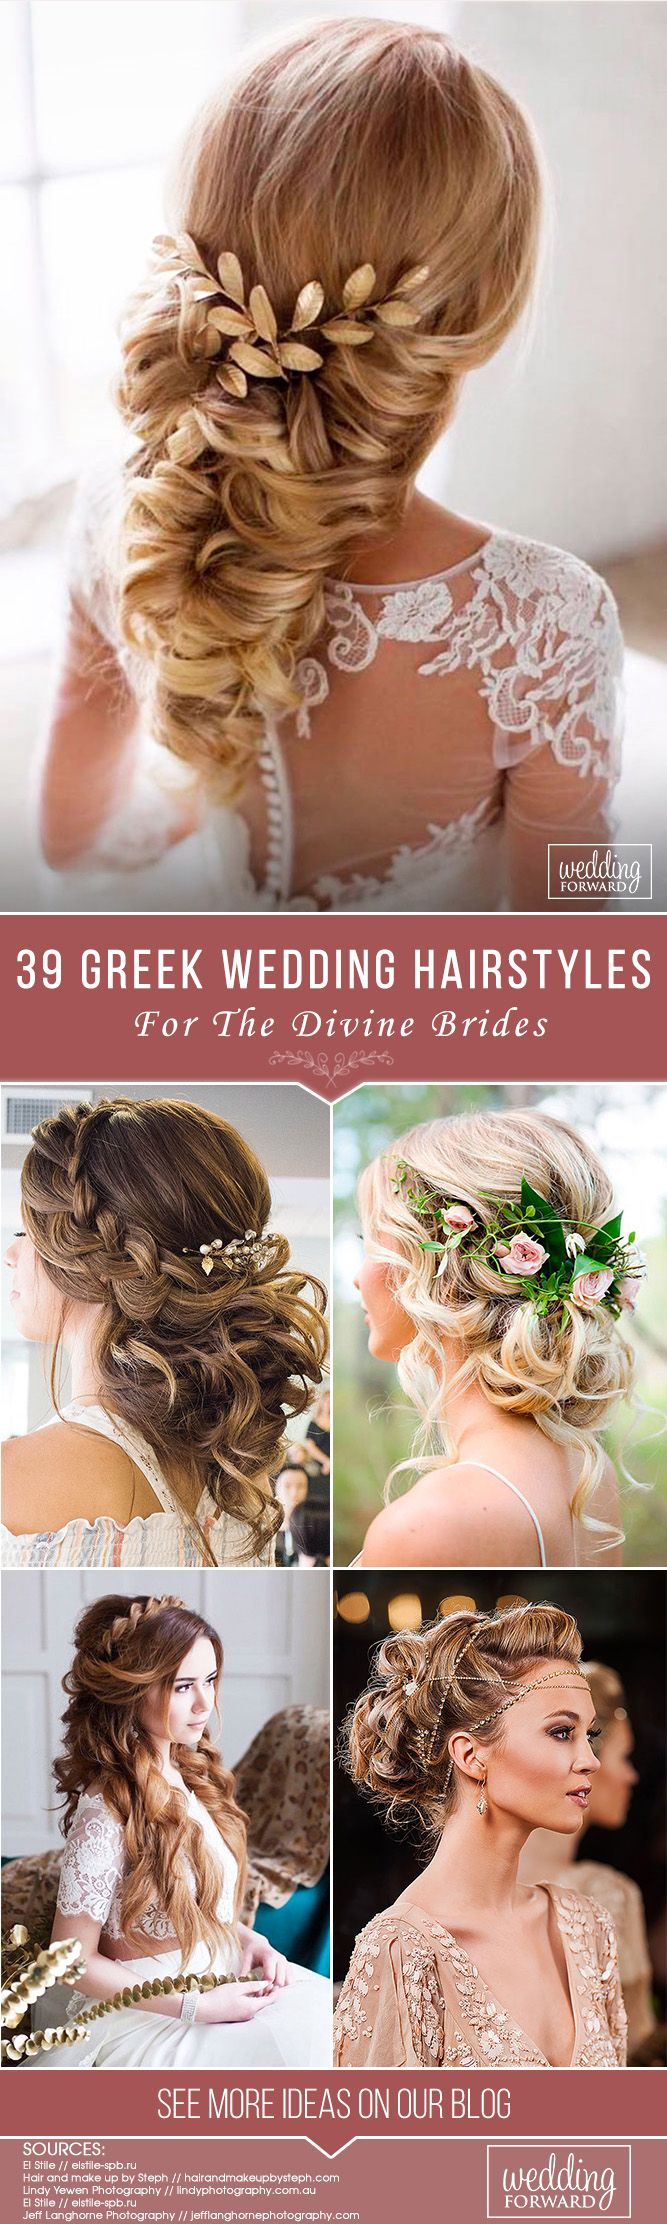 39 Greek Wedding Hairstyles For The Divine Brides ❤ Greek wedding hairstyles a...